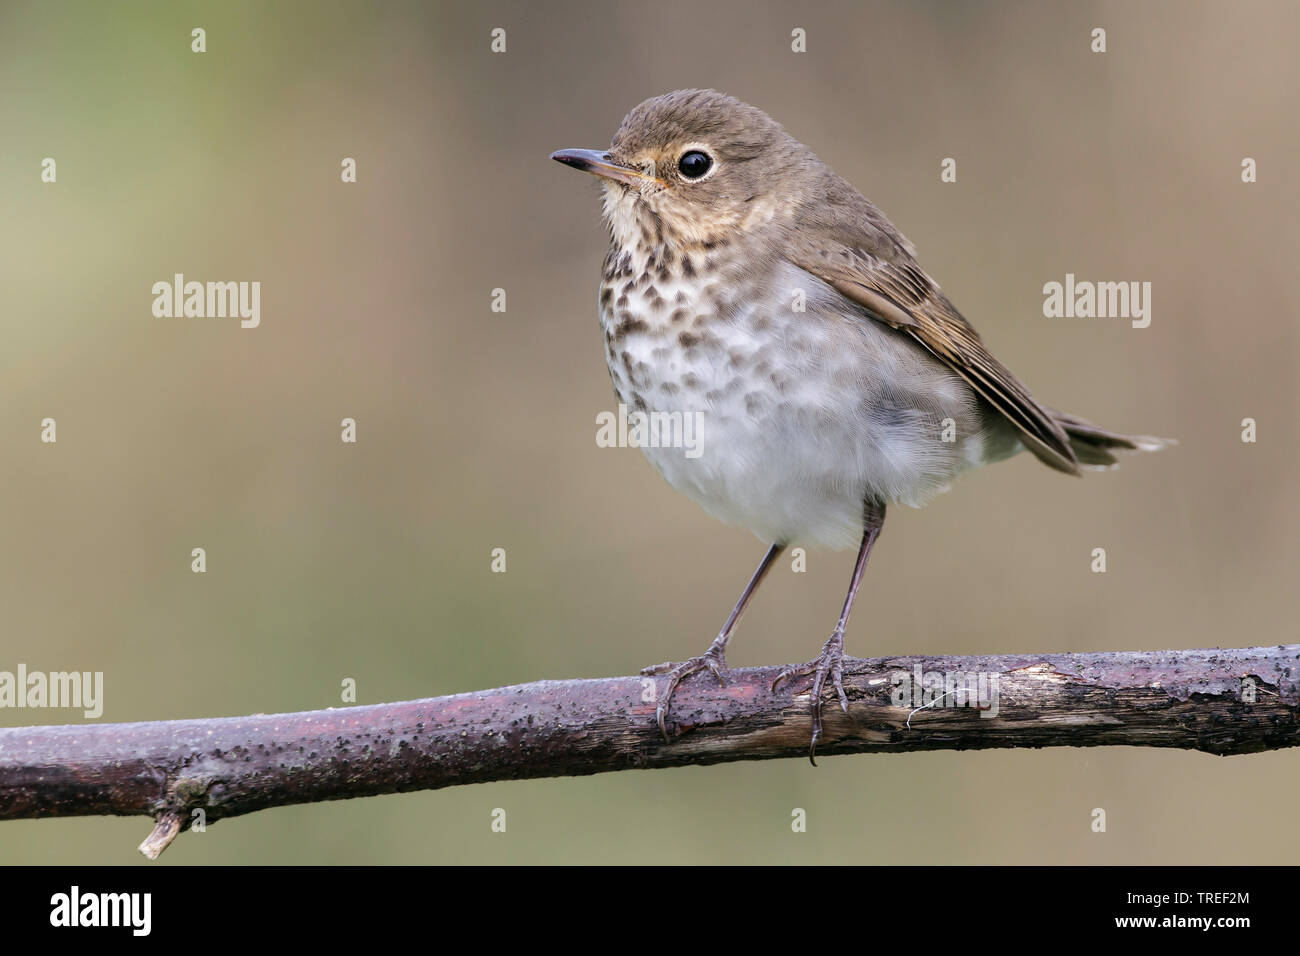 swainson's thrush (Catharus ustulatus), sitting on a branch, USA, Texas Stock Photo